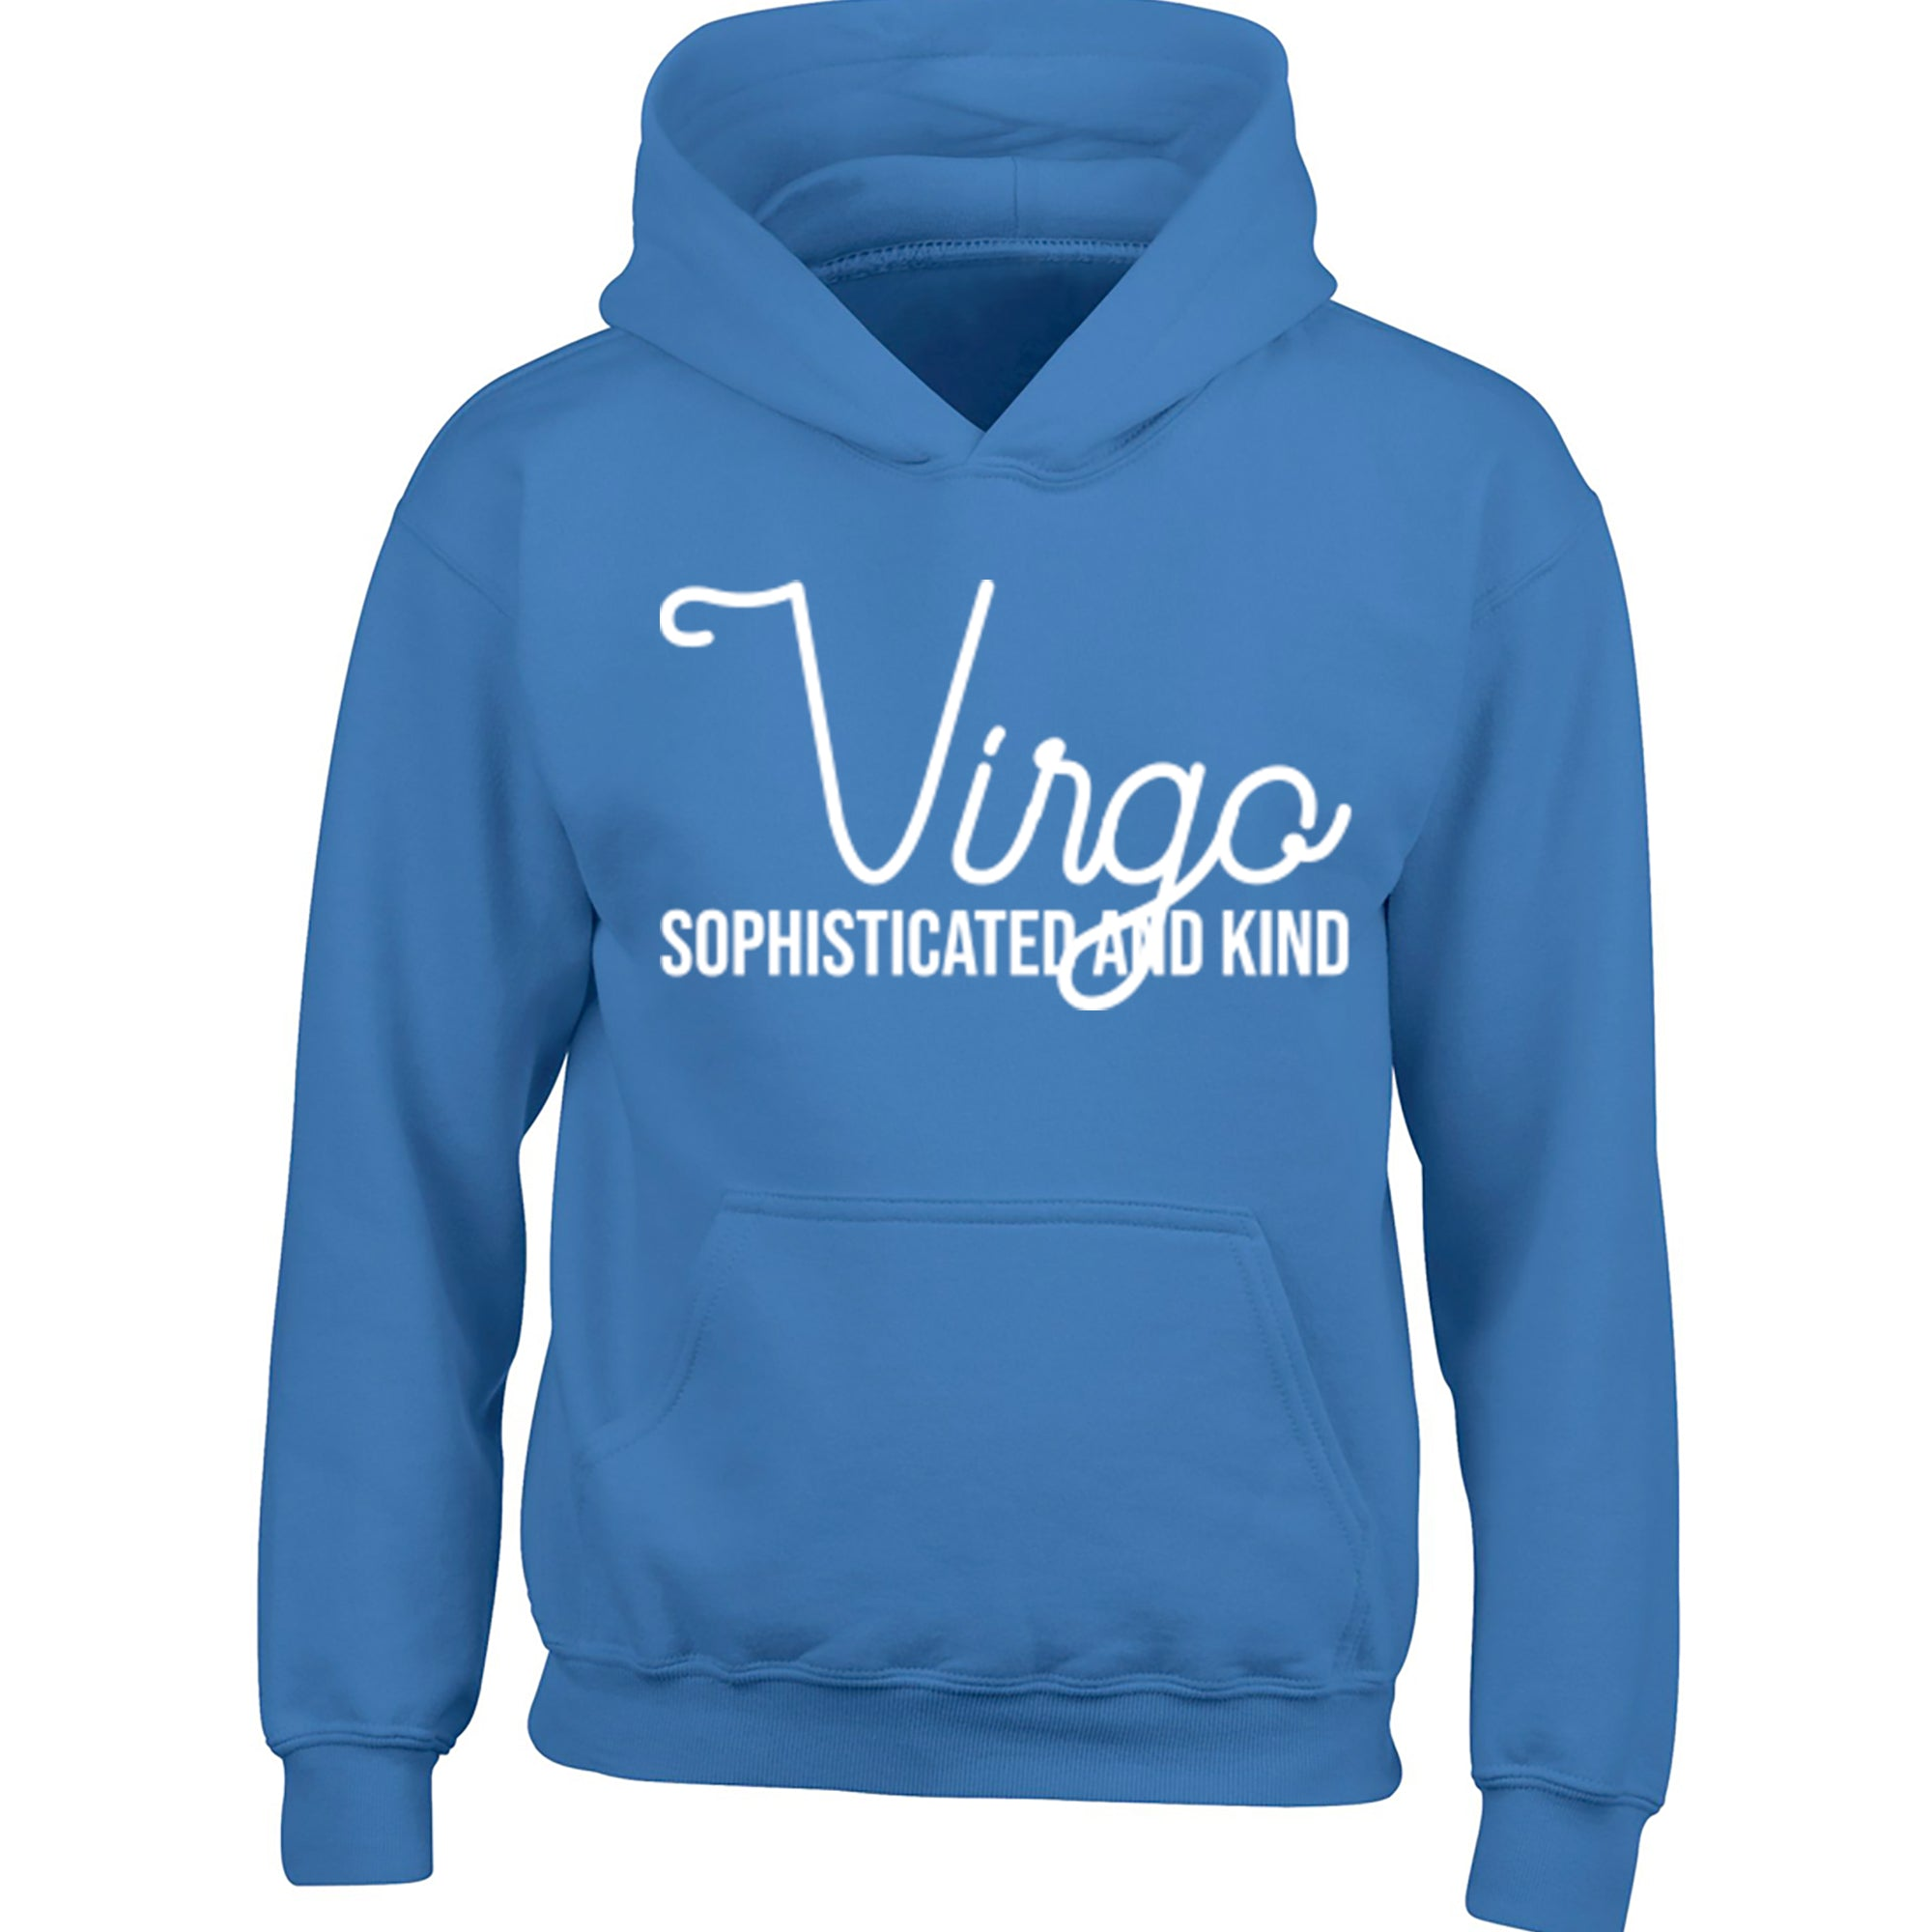 Virgo, Sophisticated And Kind Childrens Ages 3/4-12/14 Unisex Hoodie S0441 - Illustrated Identity Ltd.